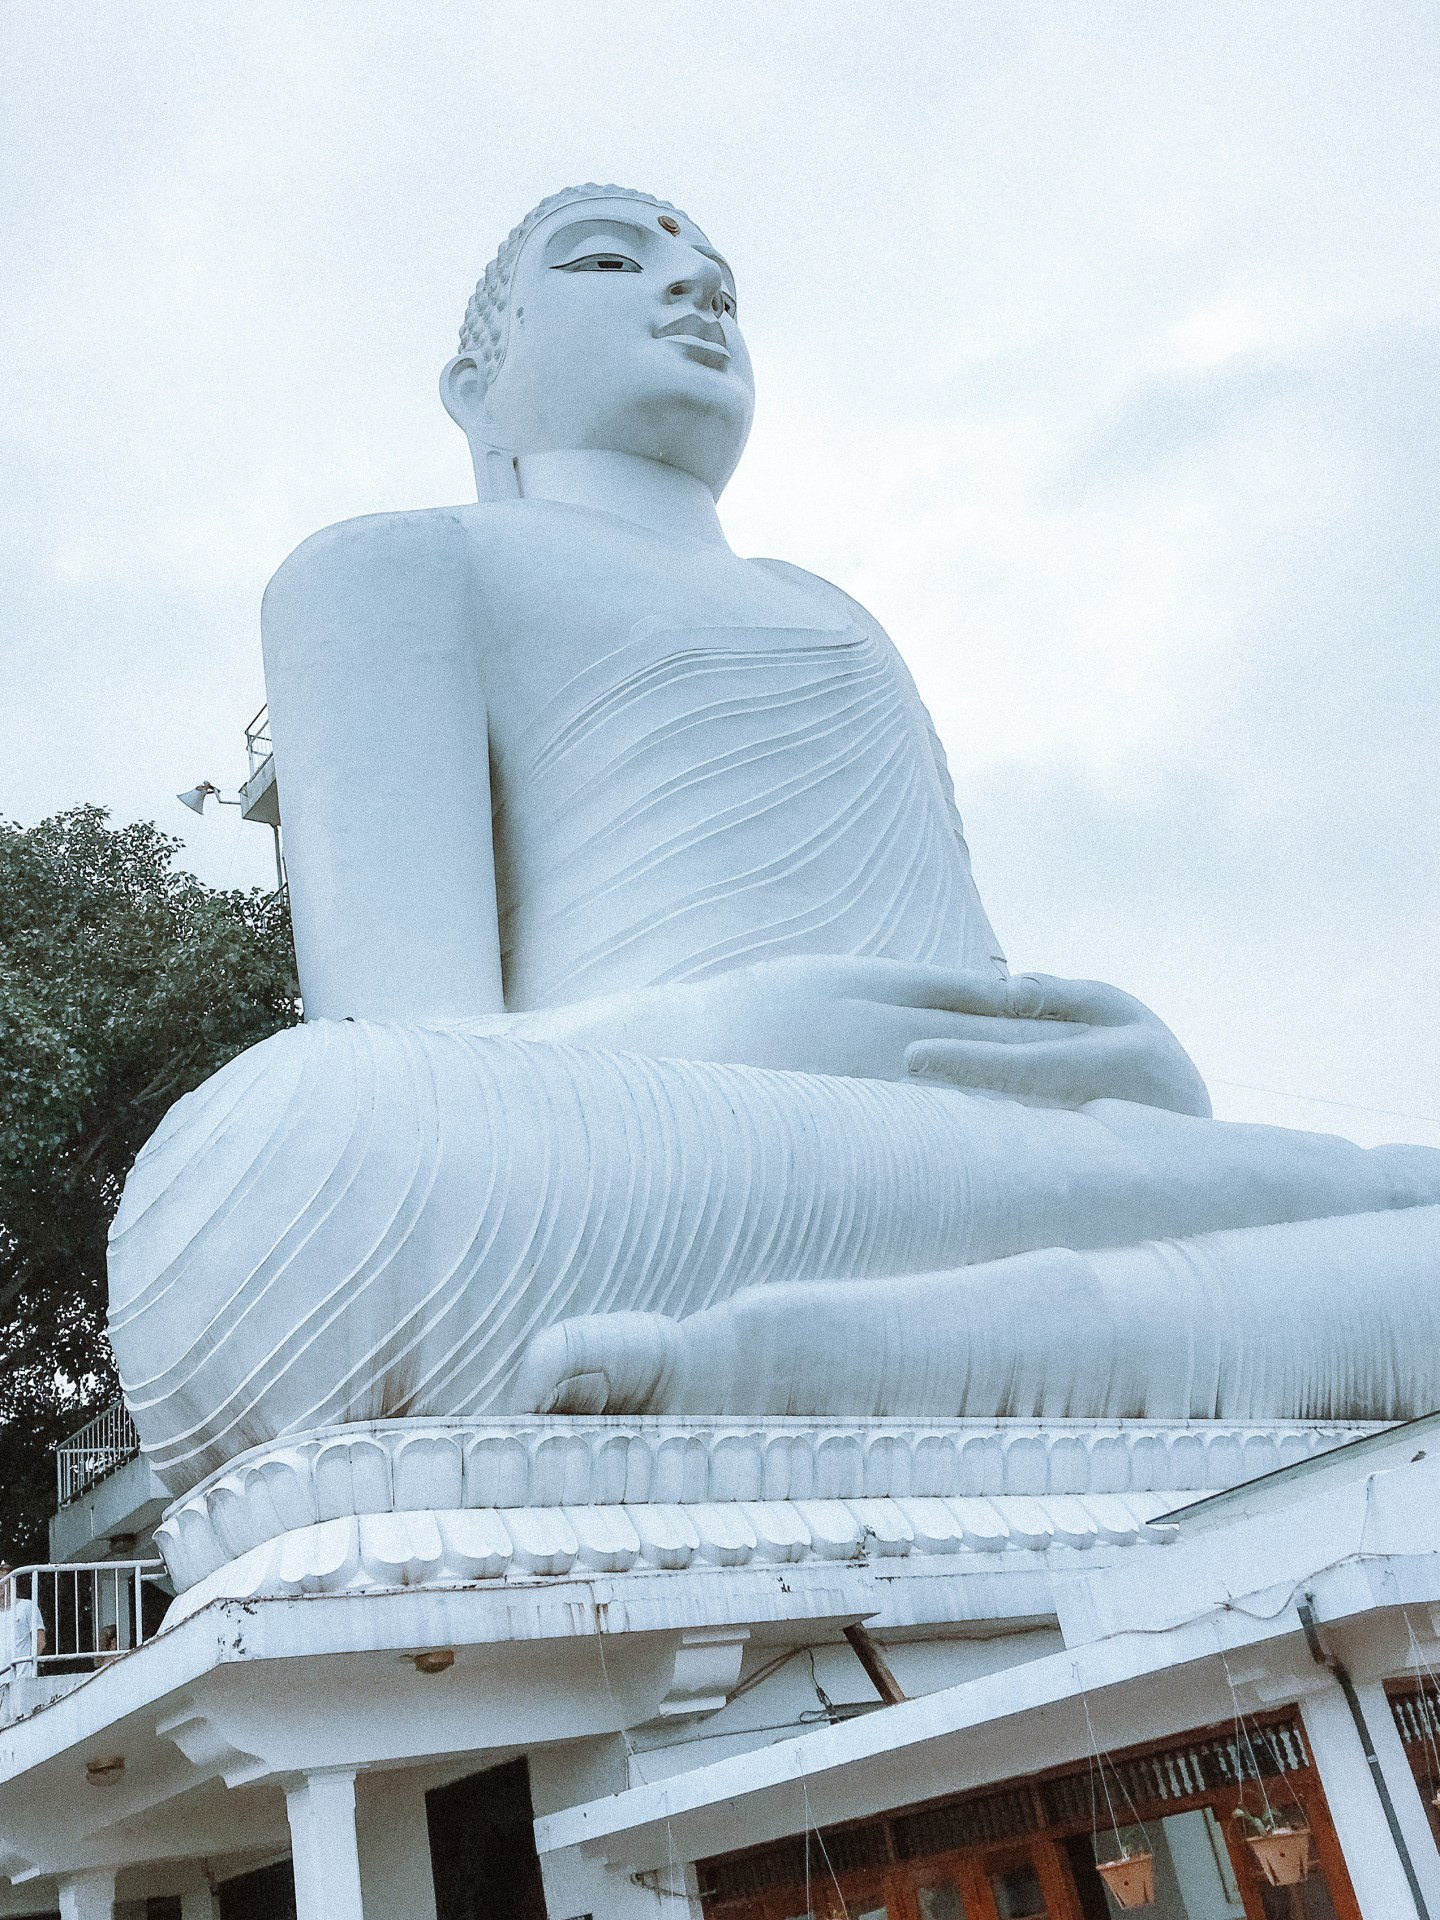 Illustrated by Sade - Buddha at Temple of Tooth in Kandy, Sri Lanka